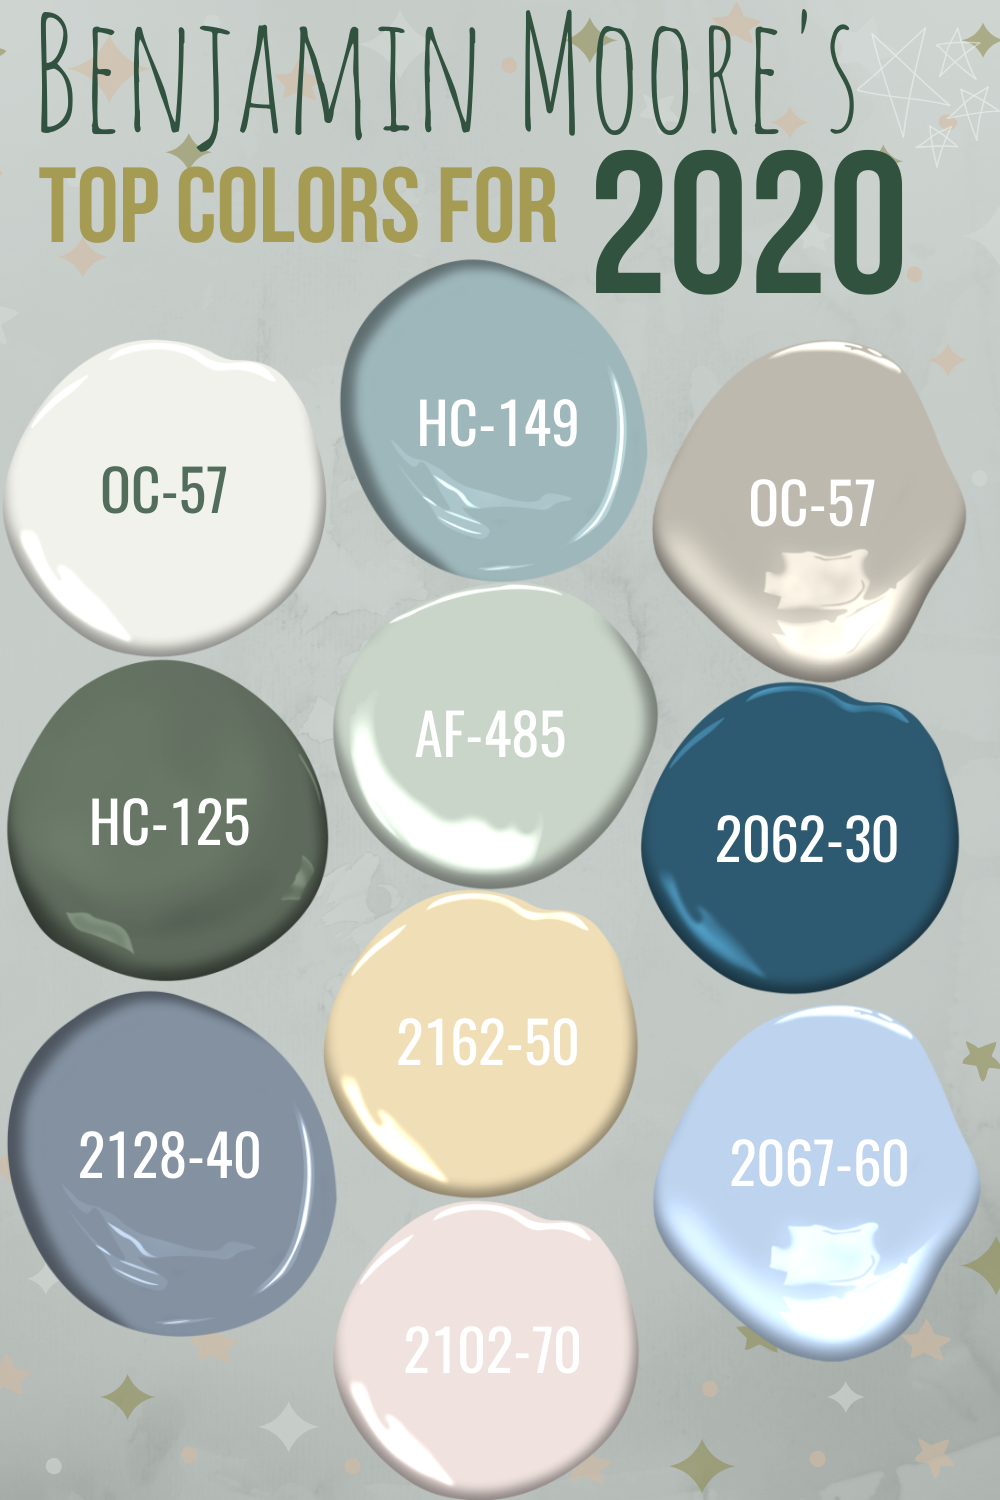 benjamin s moore s top colors for 2020 in 2020 trending on paint colors for 2021 office id=17190